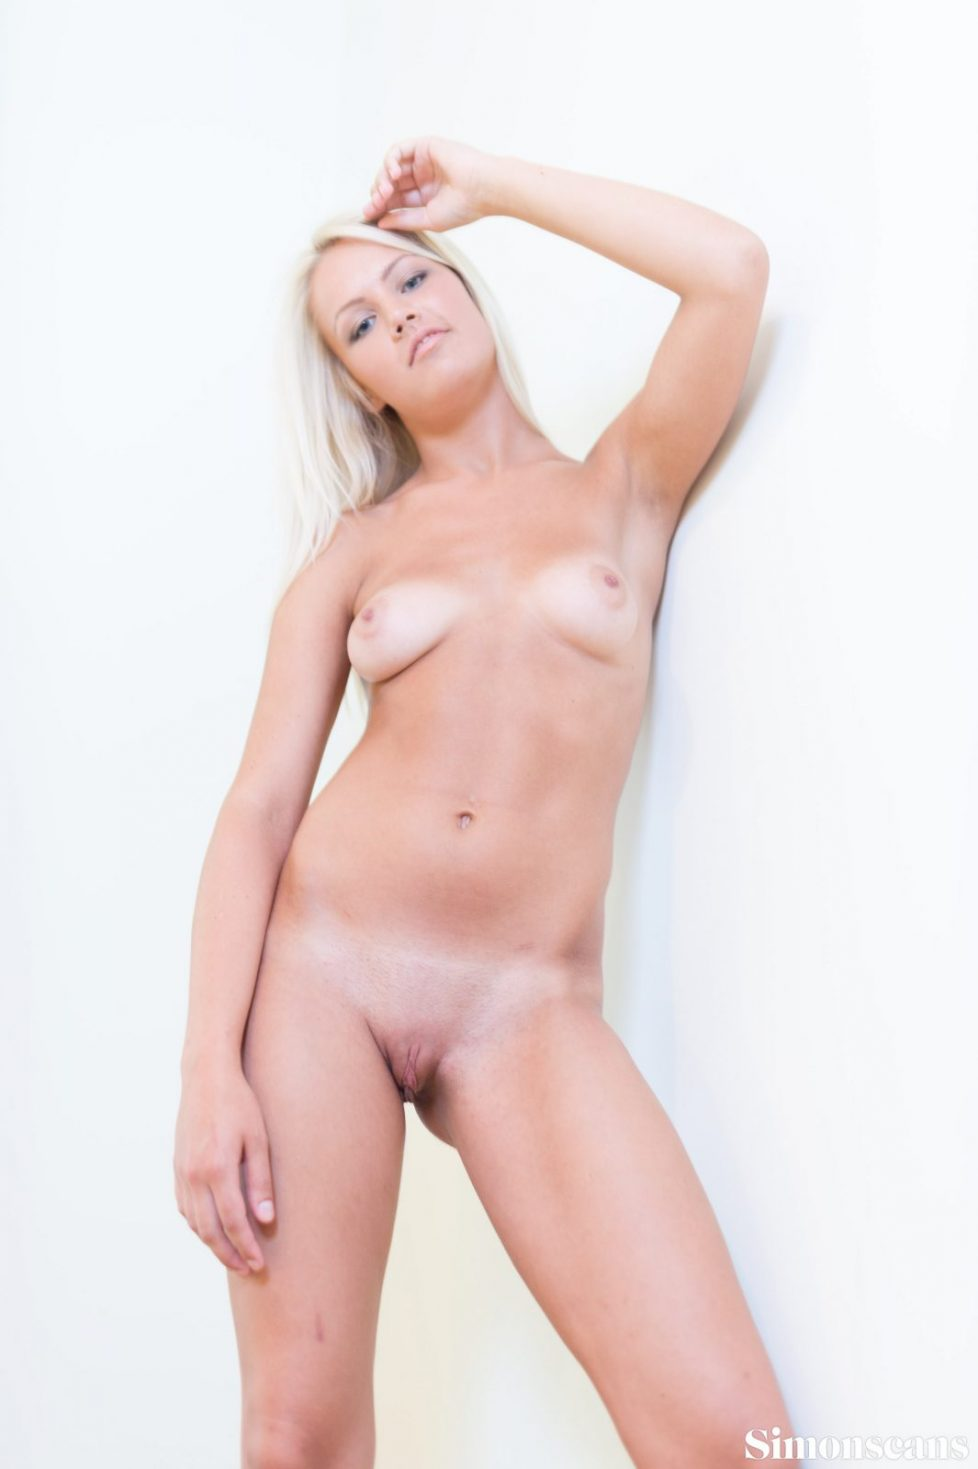 Evelyn_white_wall_nude_006